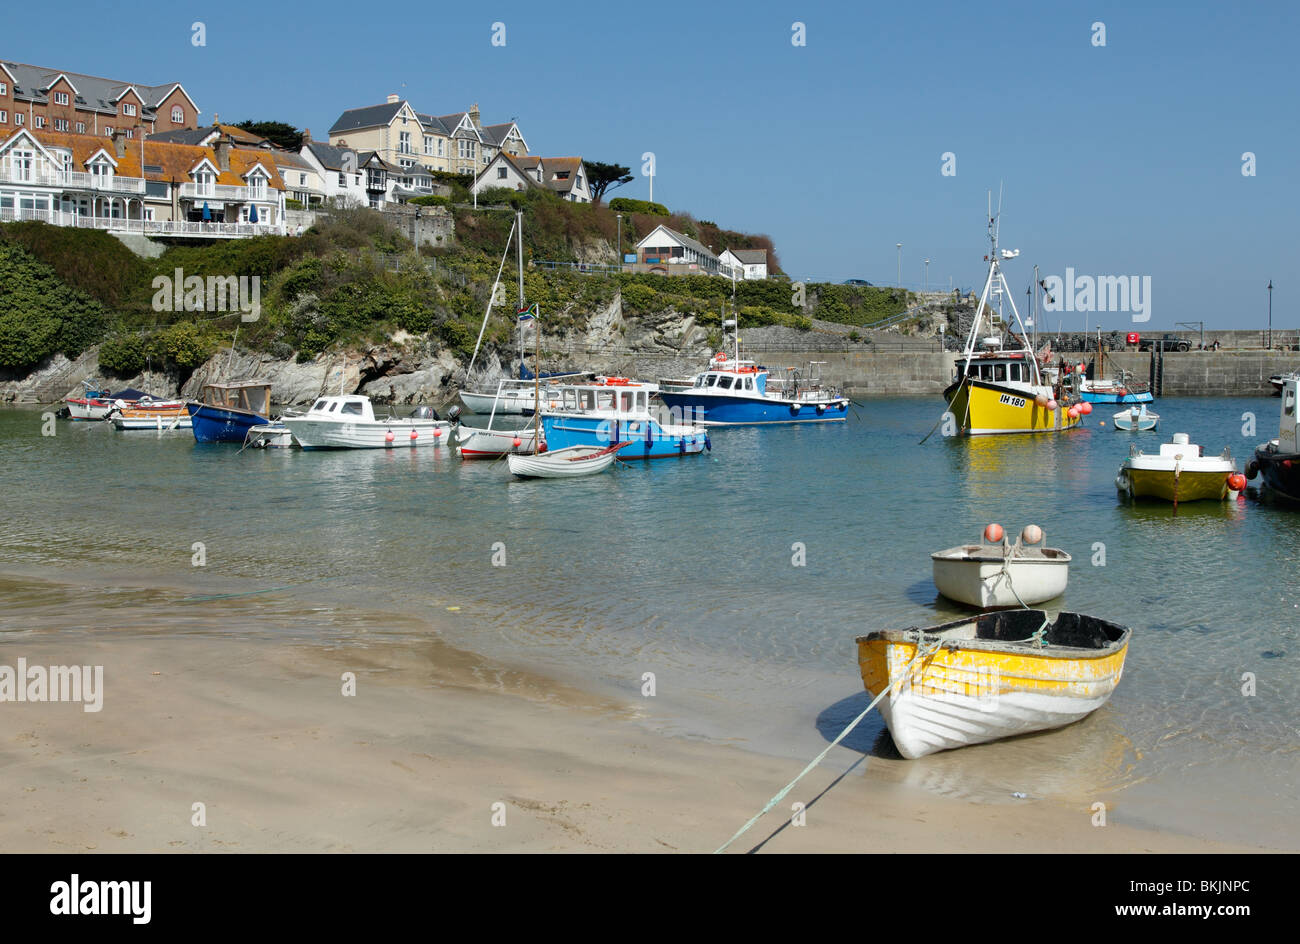 Newquay harbour Fishing boats in Cornwall UK. - Stock Image